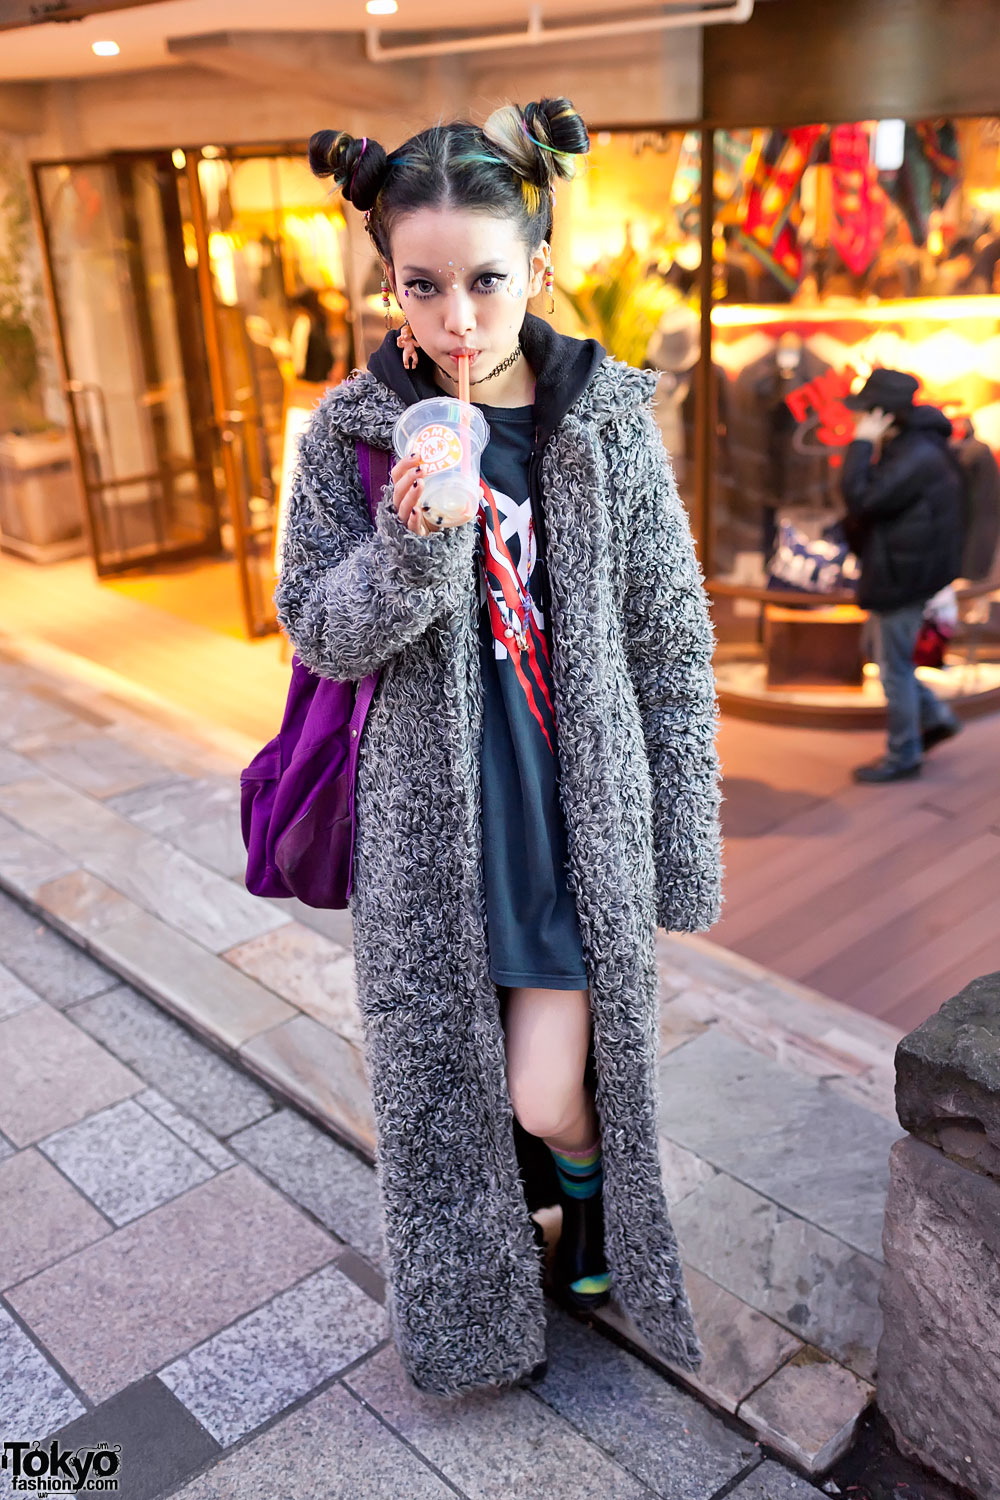 10 Things That Mattered In Harajuku Street Fashion In 2012